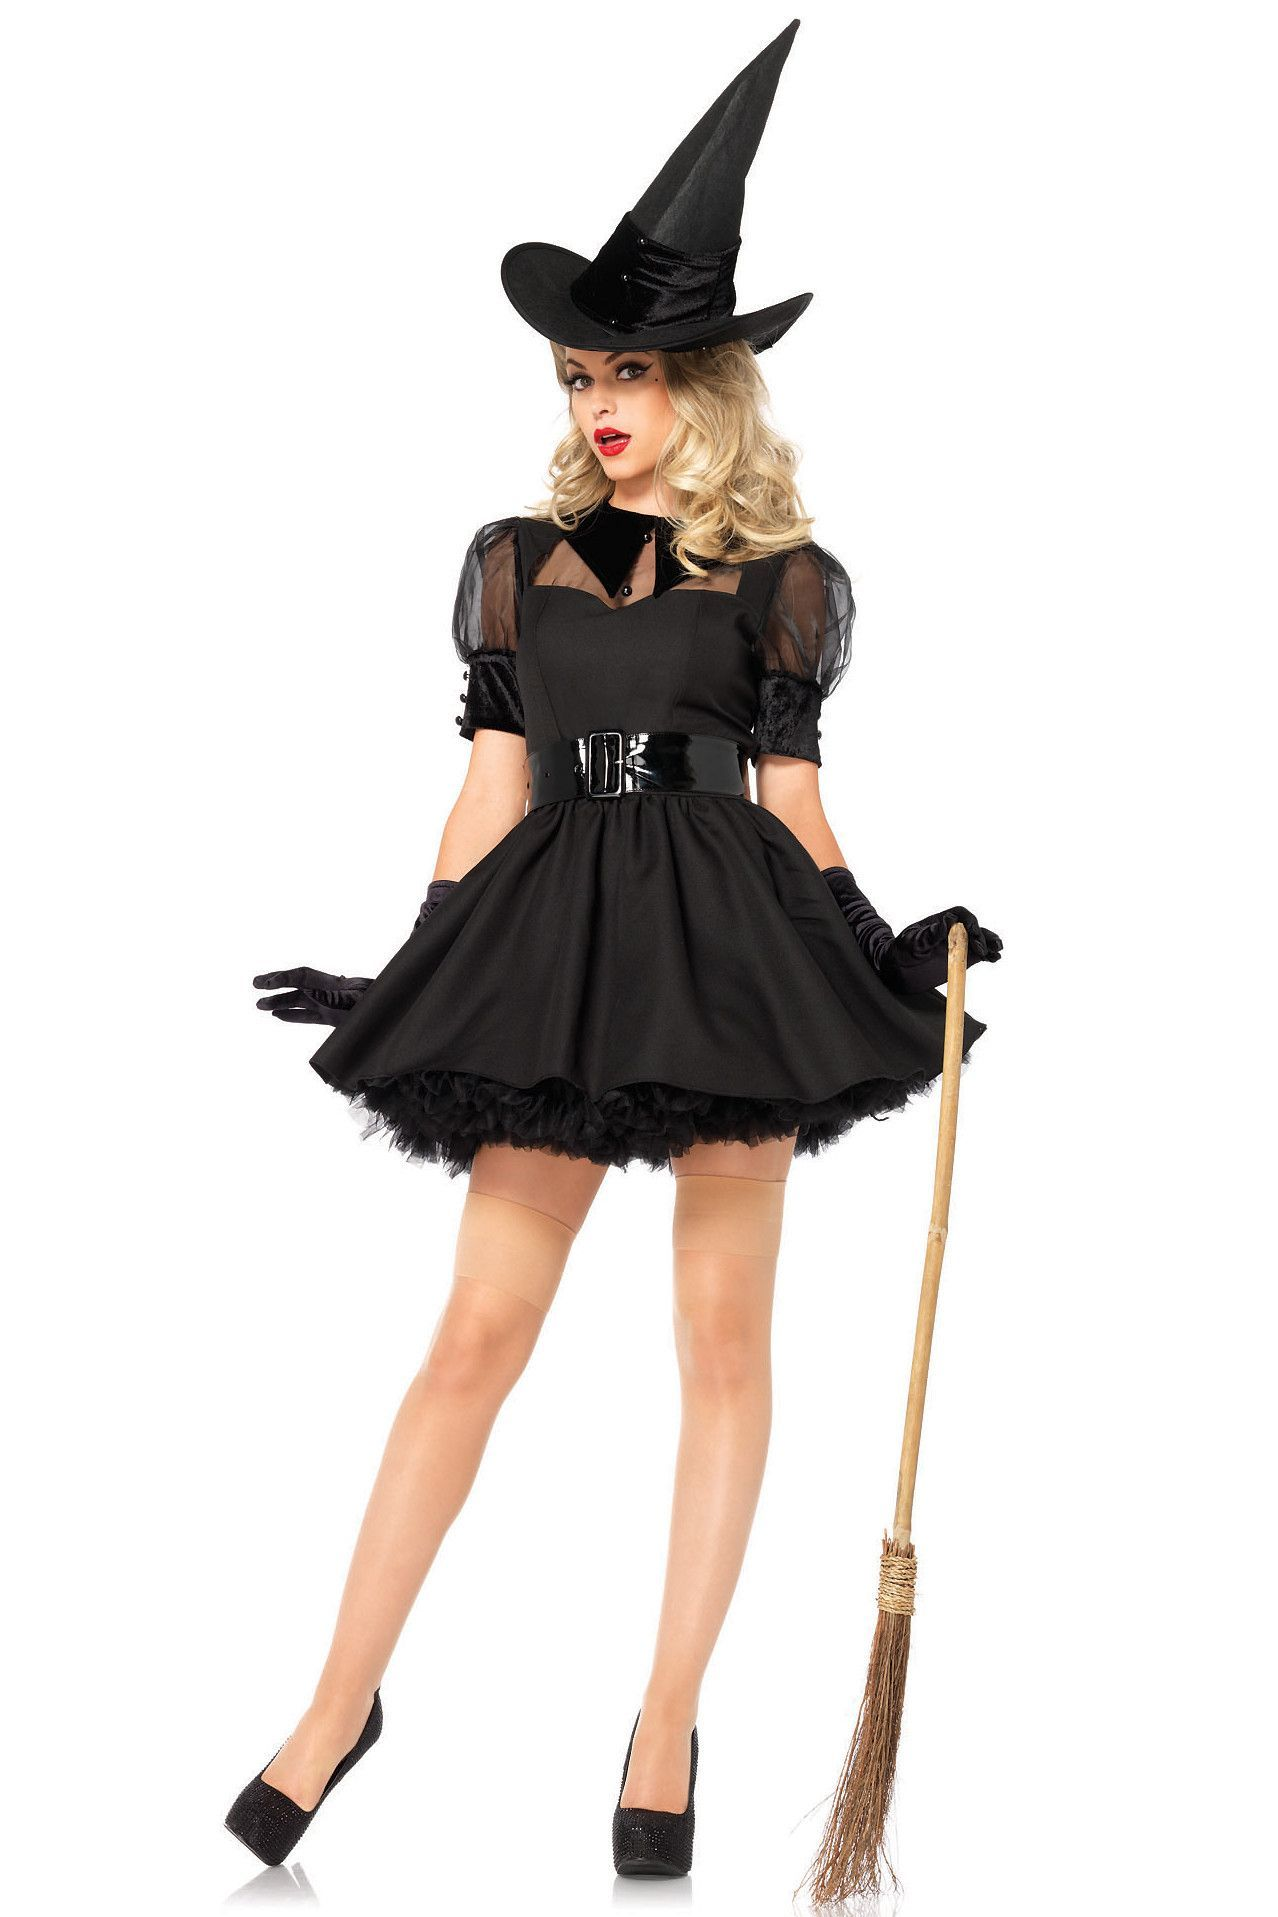 Bewitching Witch Costumes for women, Witches costumes